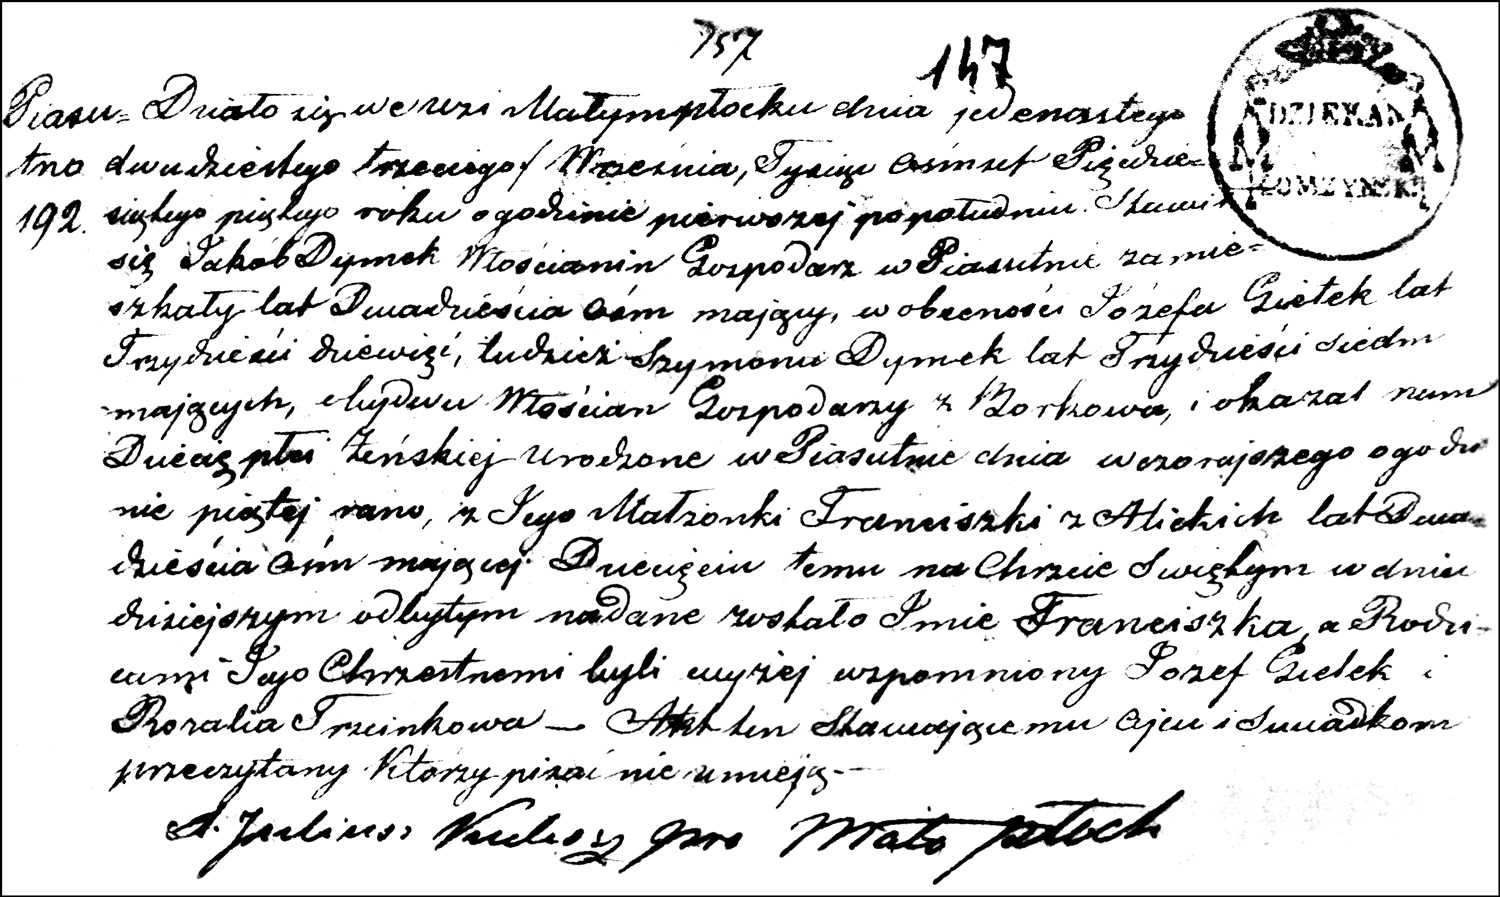 The Birth and Baptismal Record of Franciszka Dymek – 1855